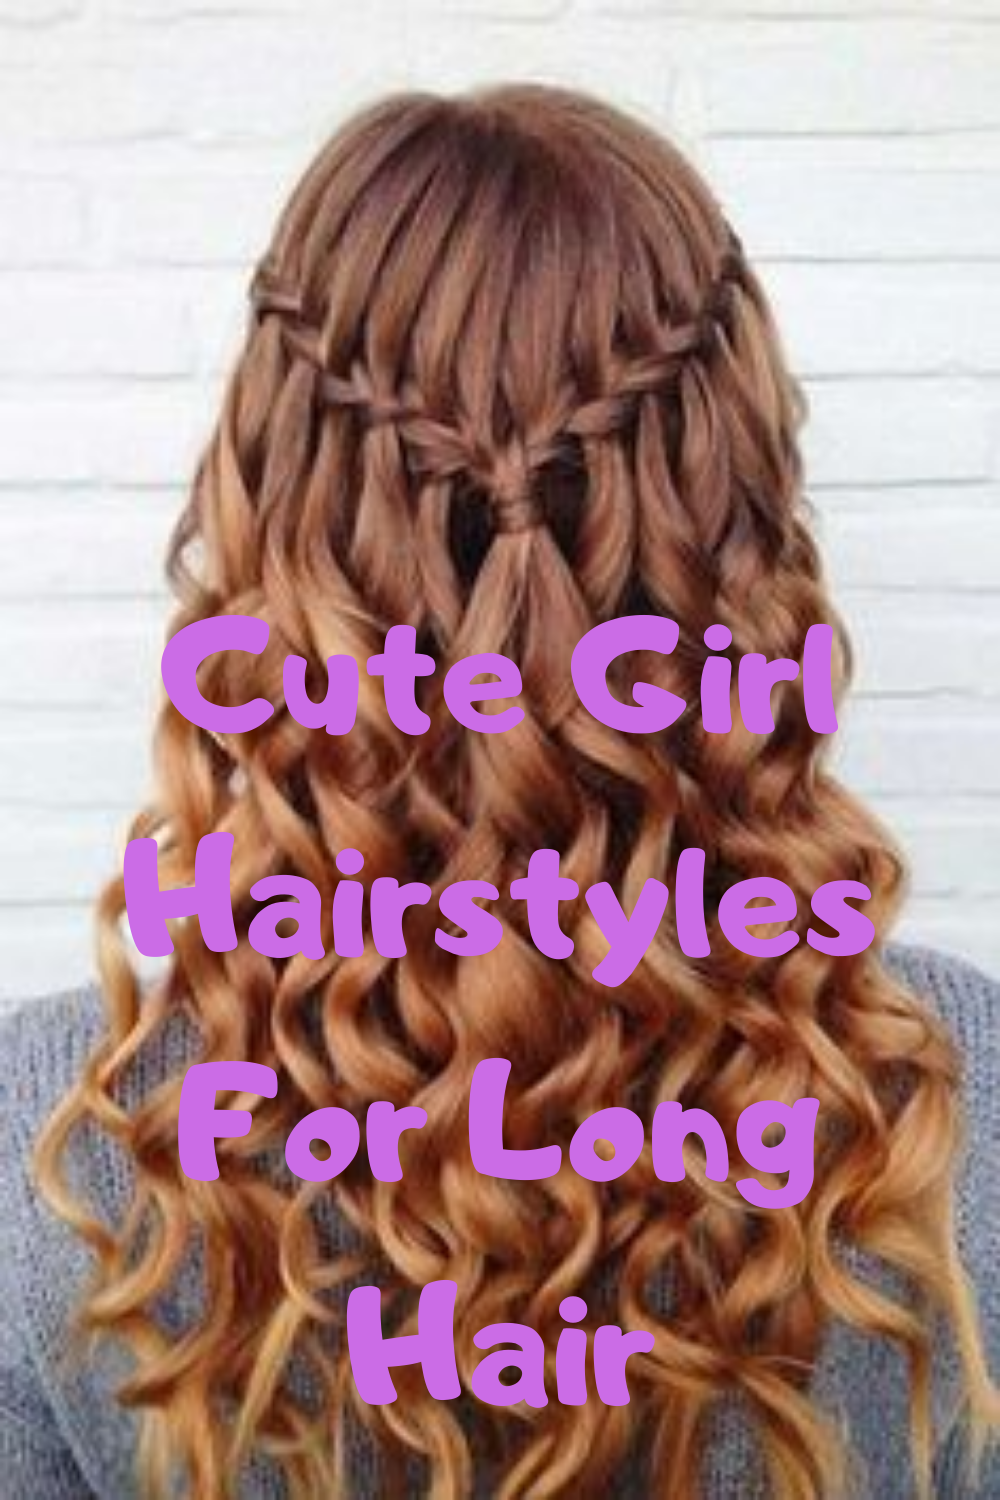 Cute Girl Hairstyle For Long Hair Old Hairstyles Hair Styles Long Hair Styles